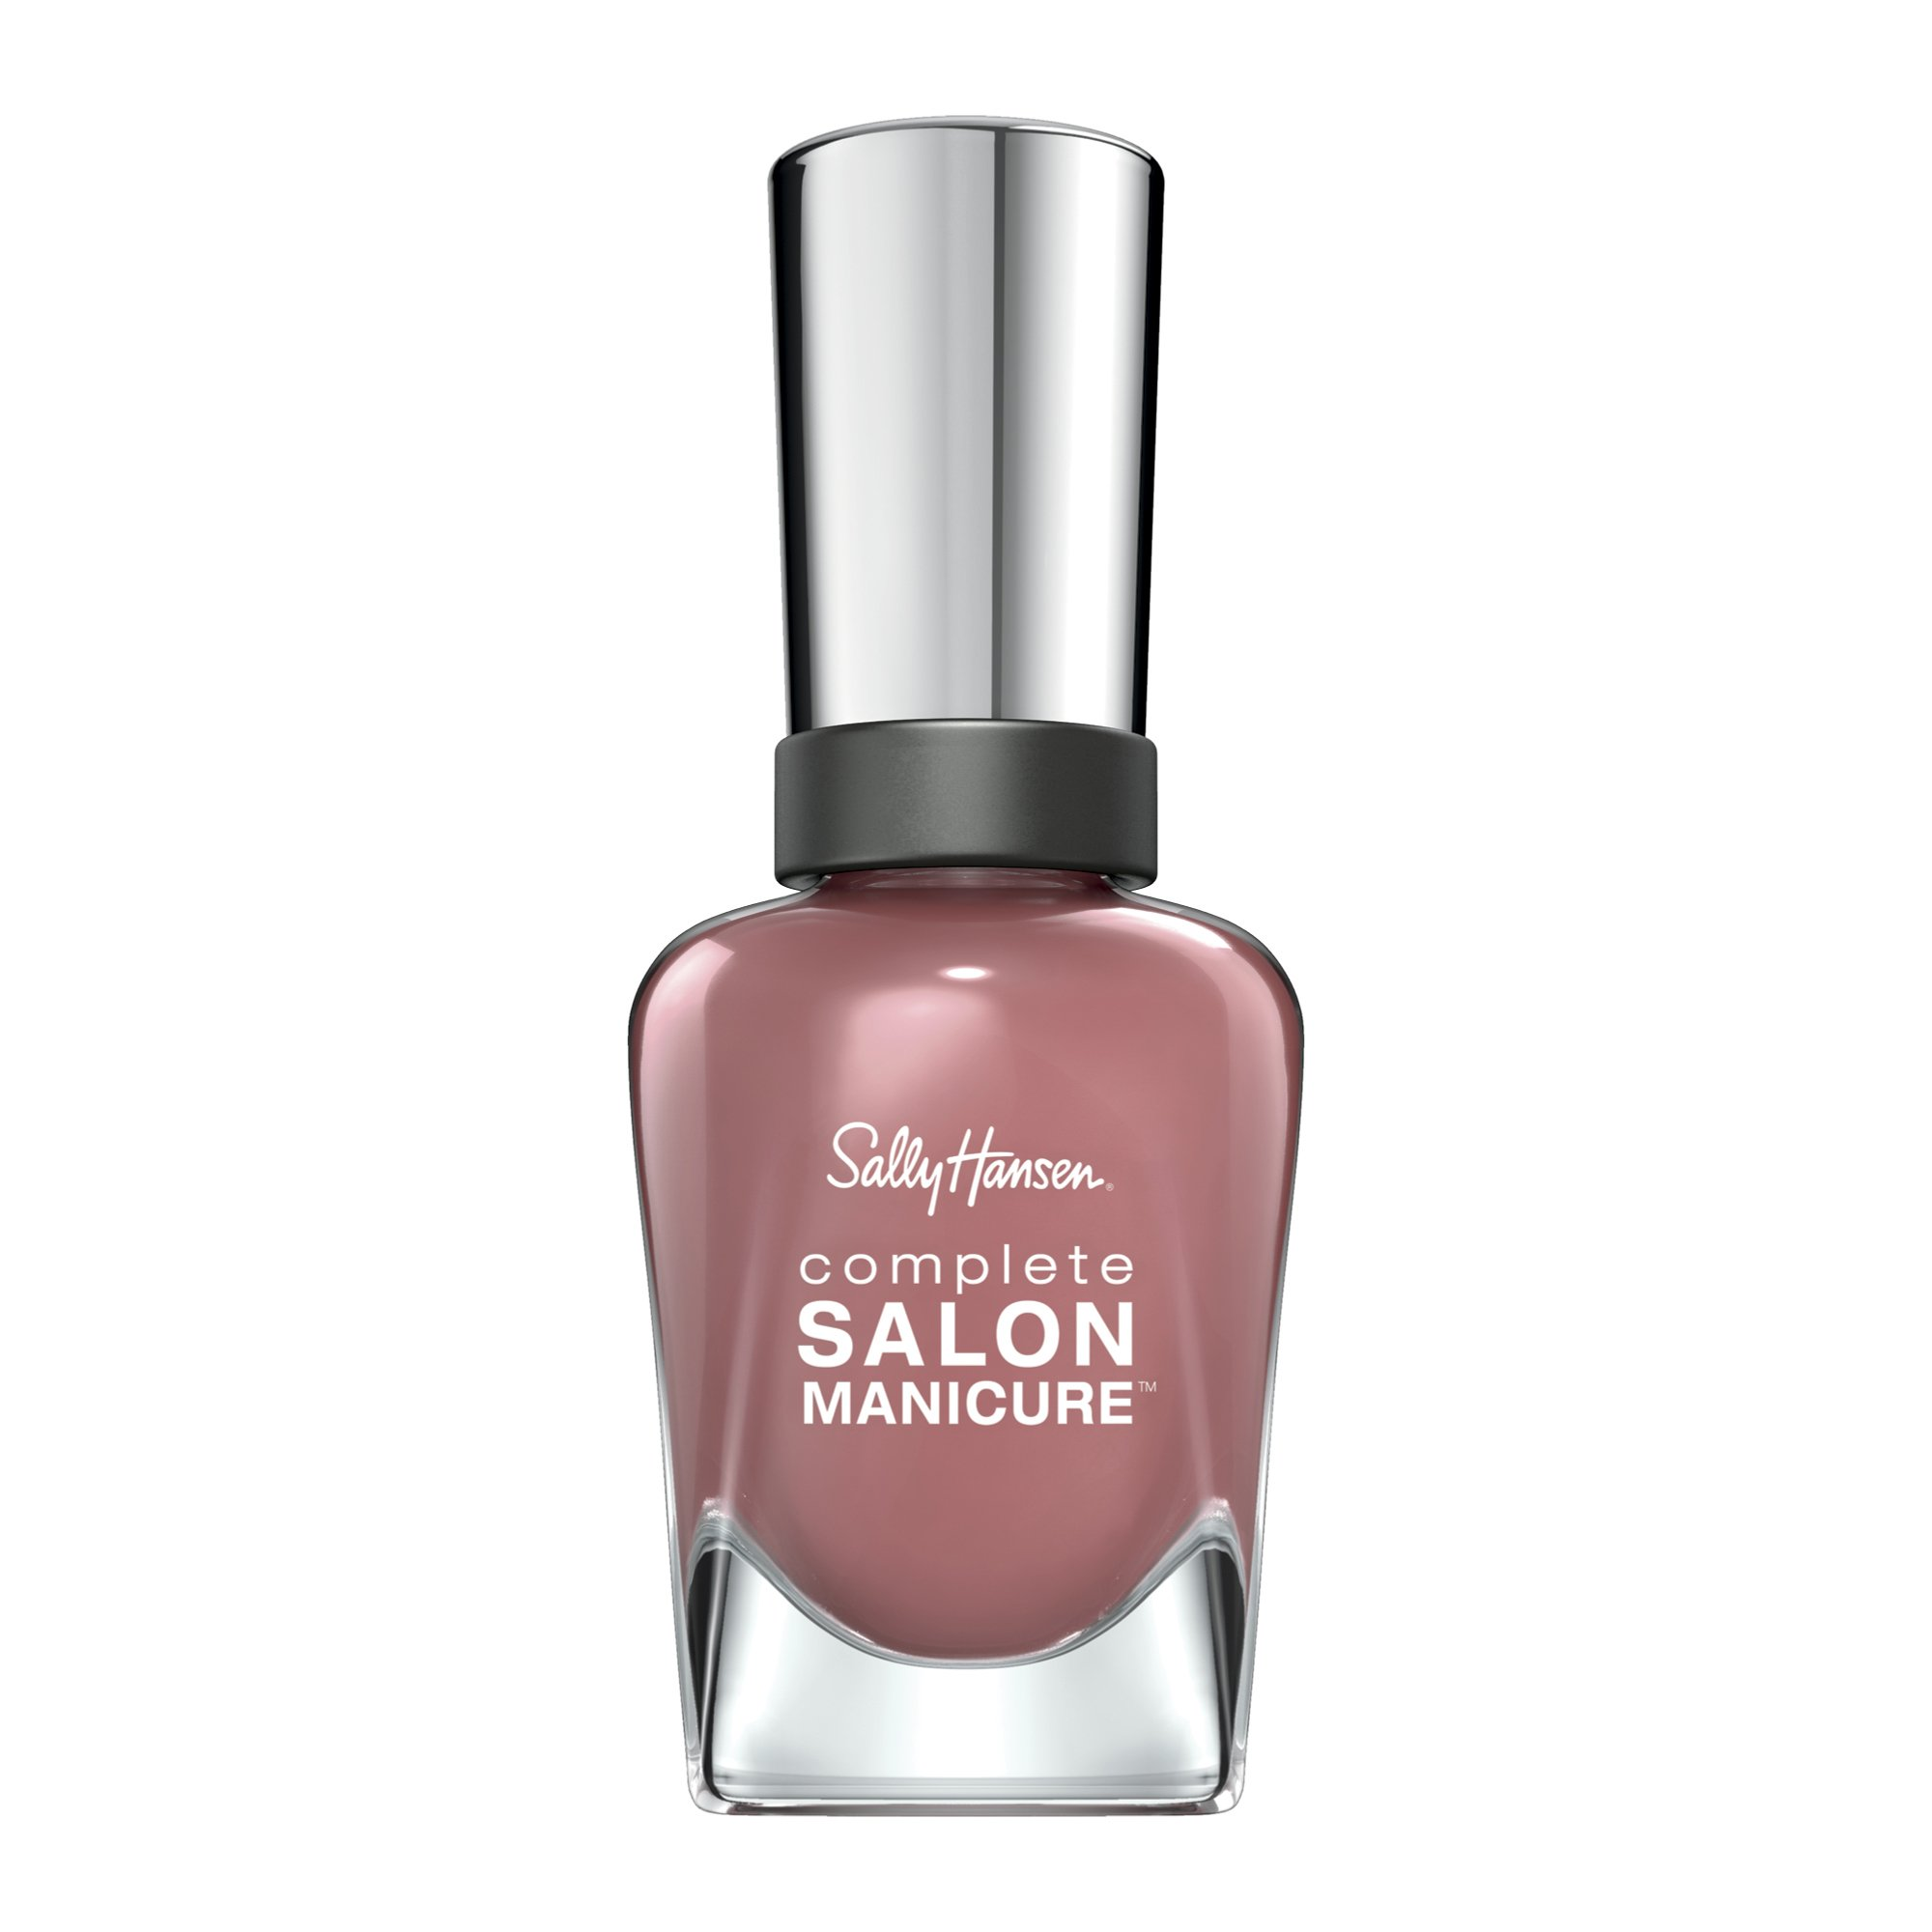 Sally Hansen Complete Salon Manicure Nail Polish, So Much Fawn 0.5 Ounce Long-Lasting Nail Polish with Gel Shine and Nourishing Care